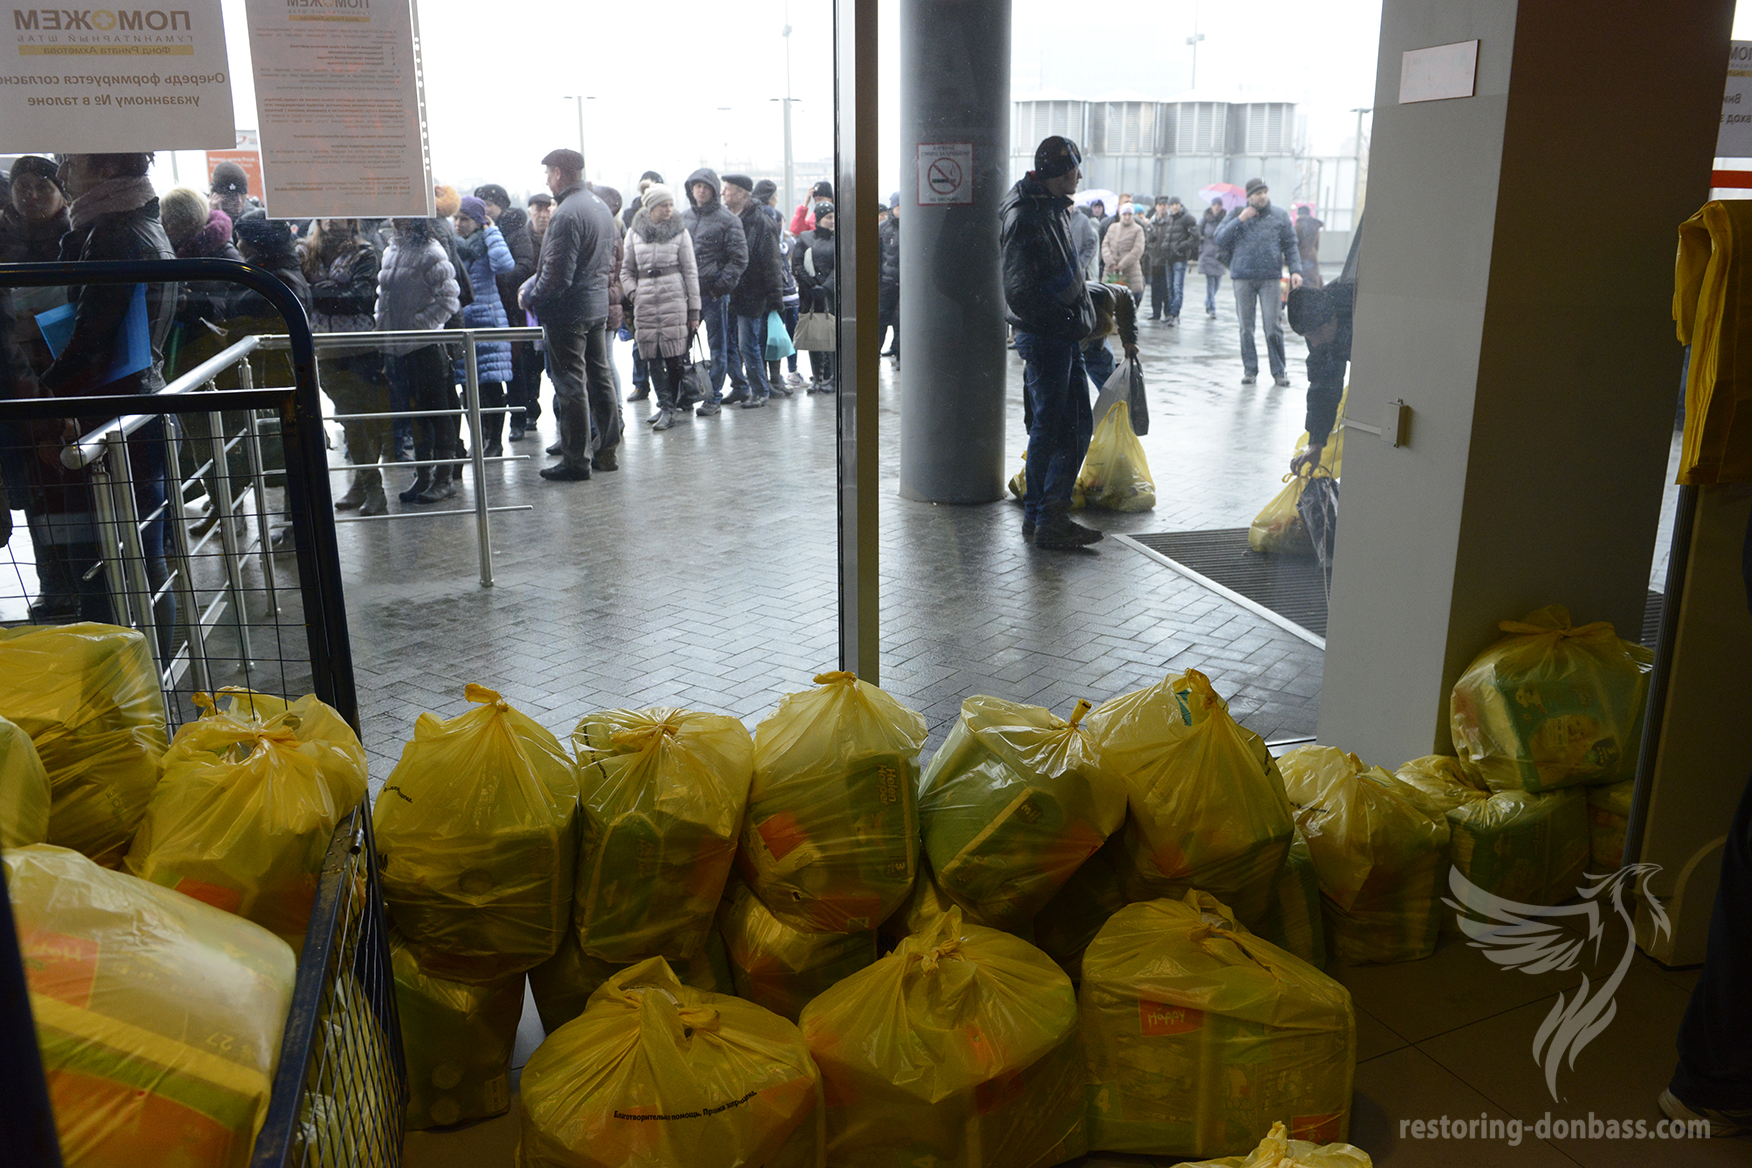 The distribution of humanitarian aid in Donetsk, Winter 2014 – 2015